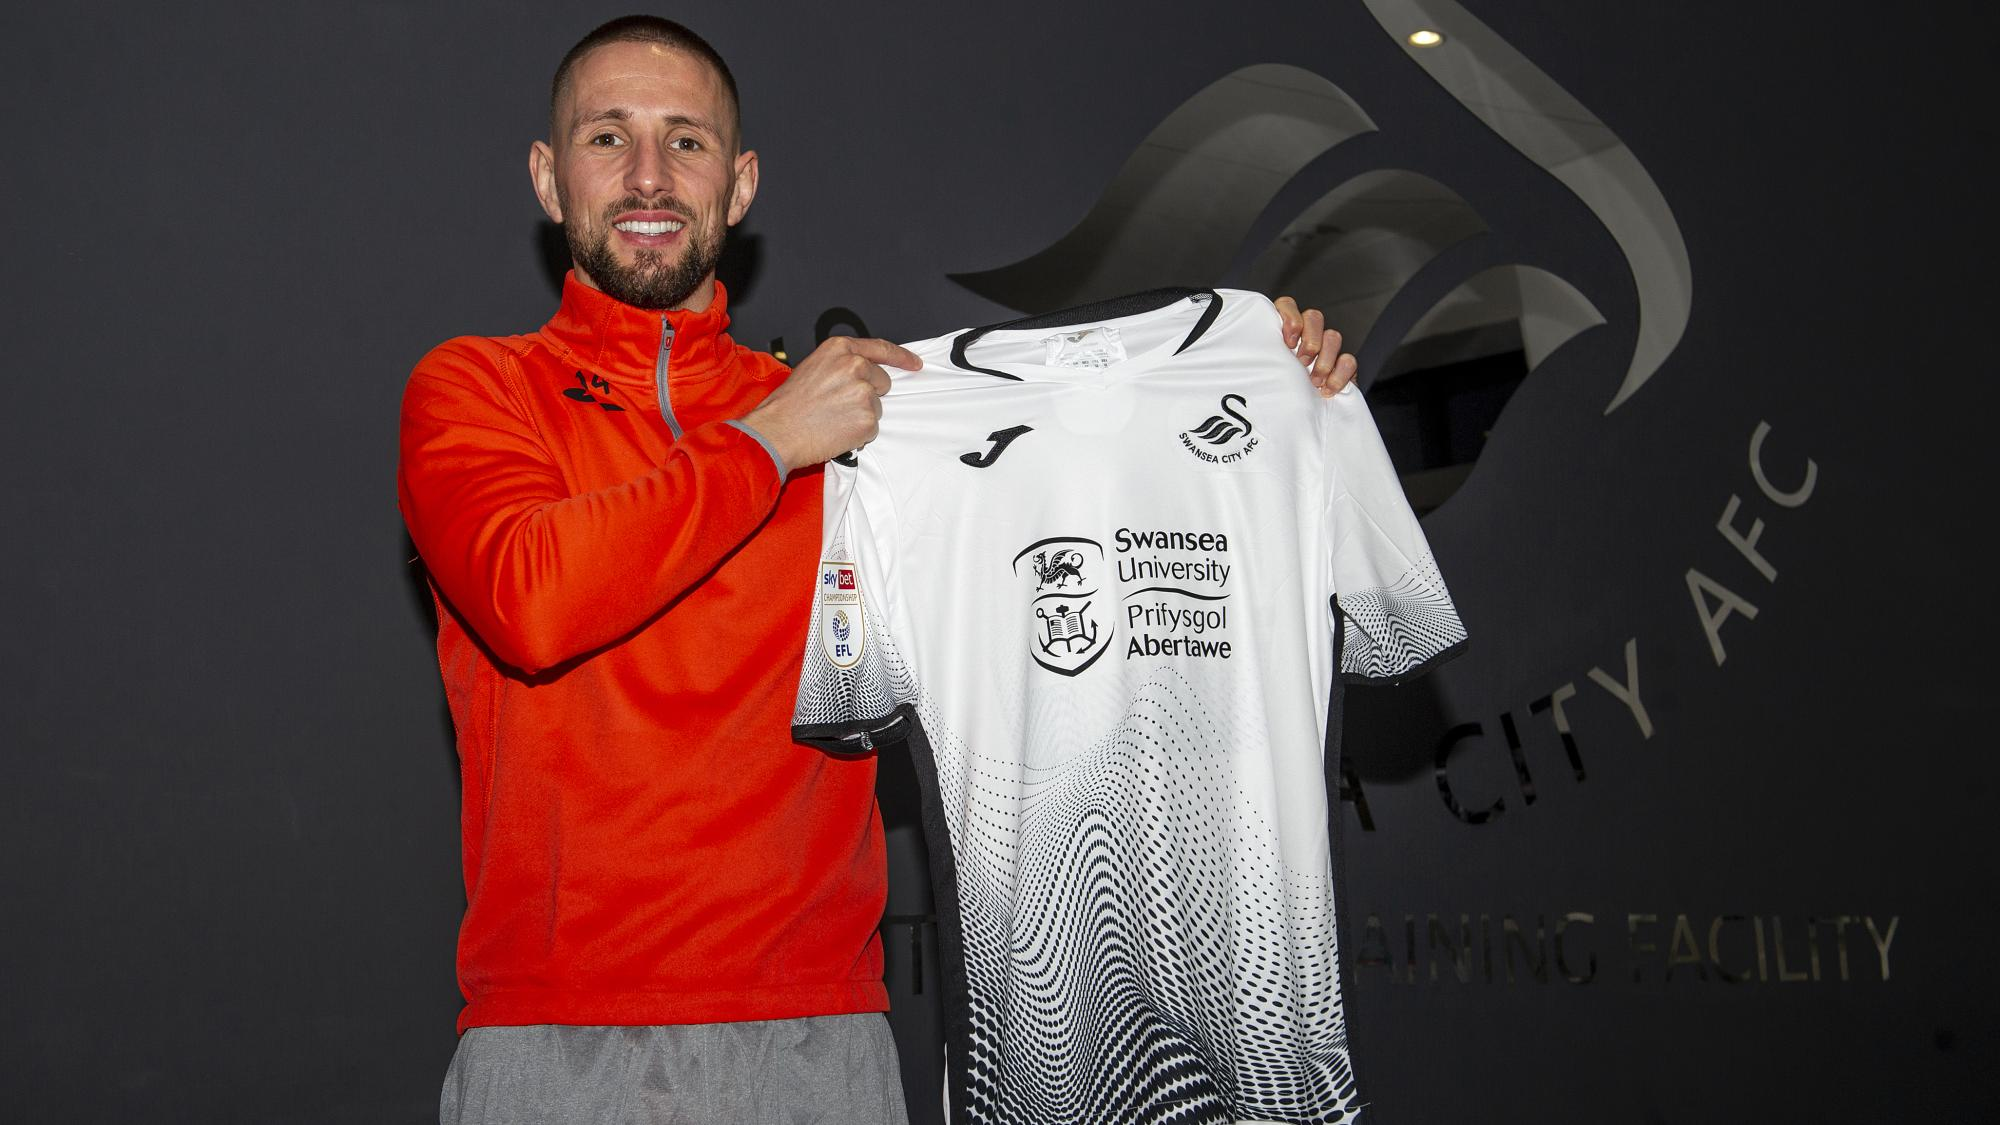 https://cdn.swanseacity.com/sites/default/files/styles/cc_2000x1125/public/2021-01/Conor%20Hourihane%204.jpg?itok=CdXIu_L8